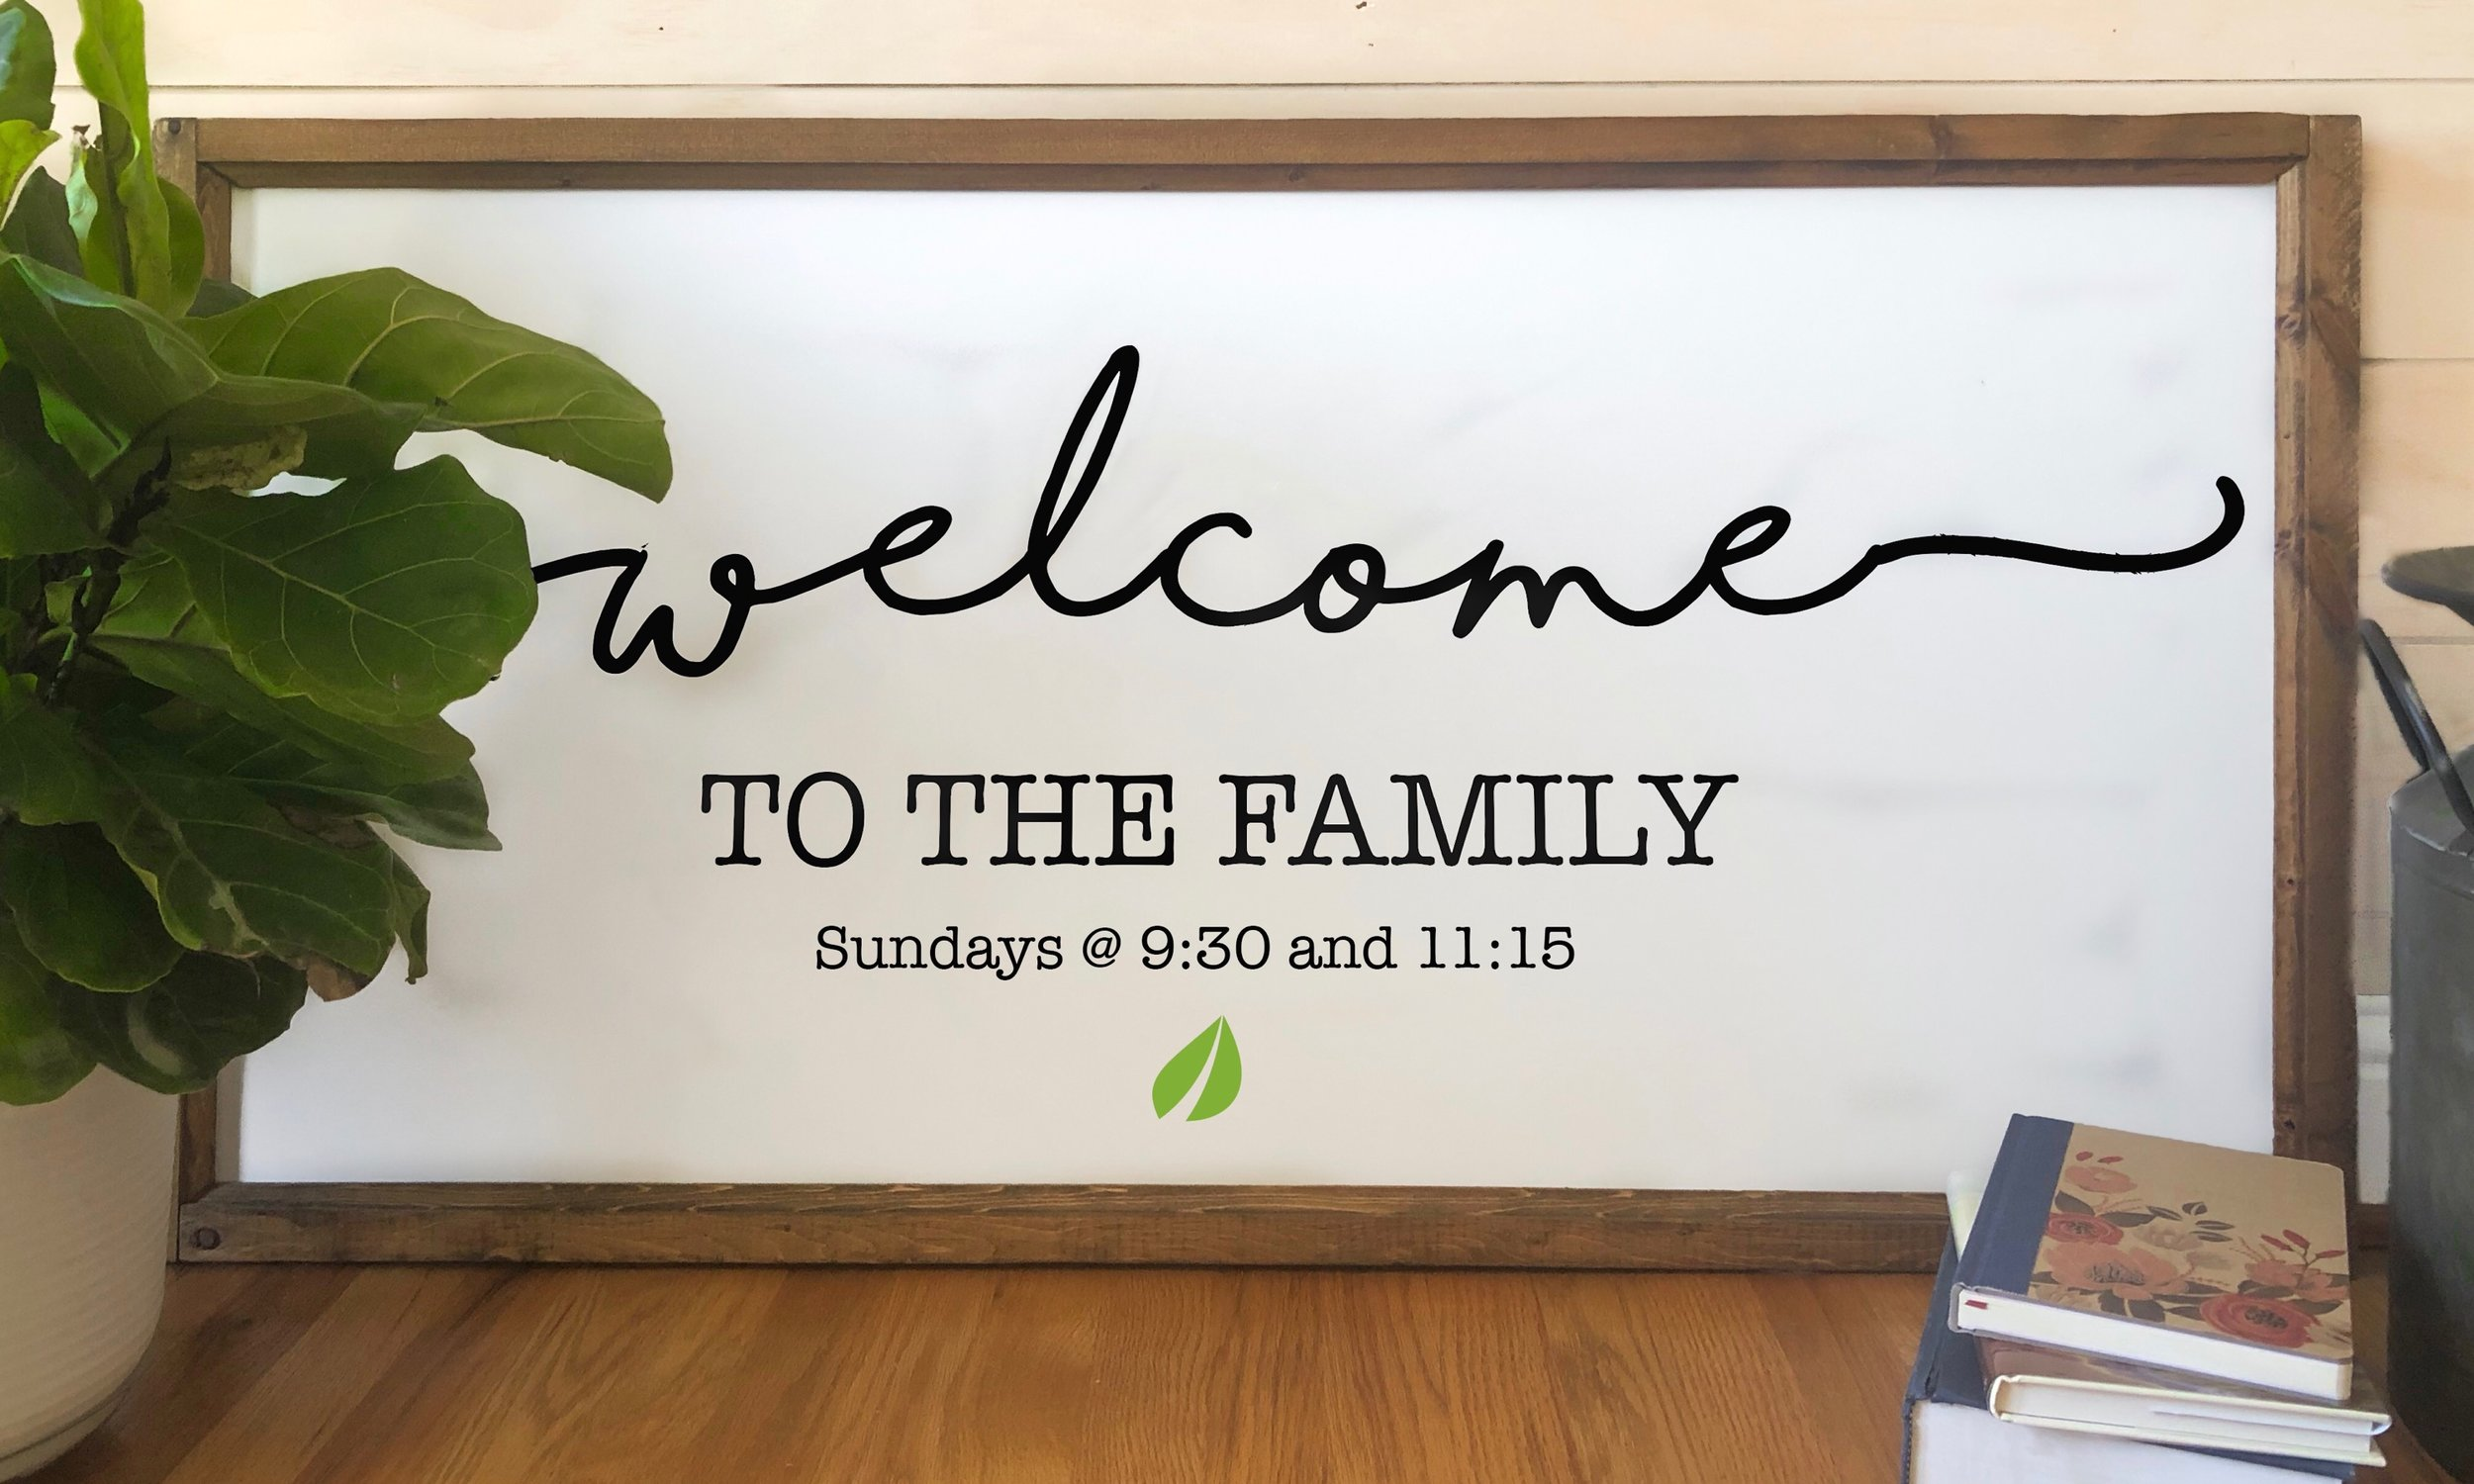 We are the sons and daughters of God, but what does that mean? How does our adoption into God's family change our daily lives? Join us as we explore how to fully receive his infinite love for us and trust the father heart of God.